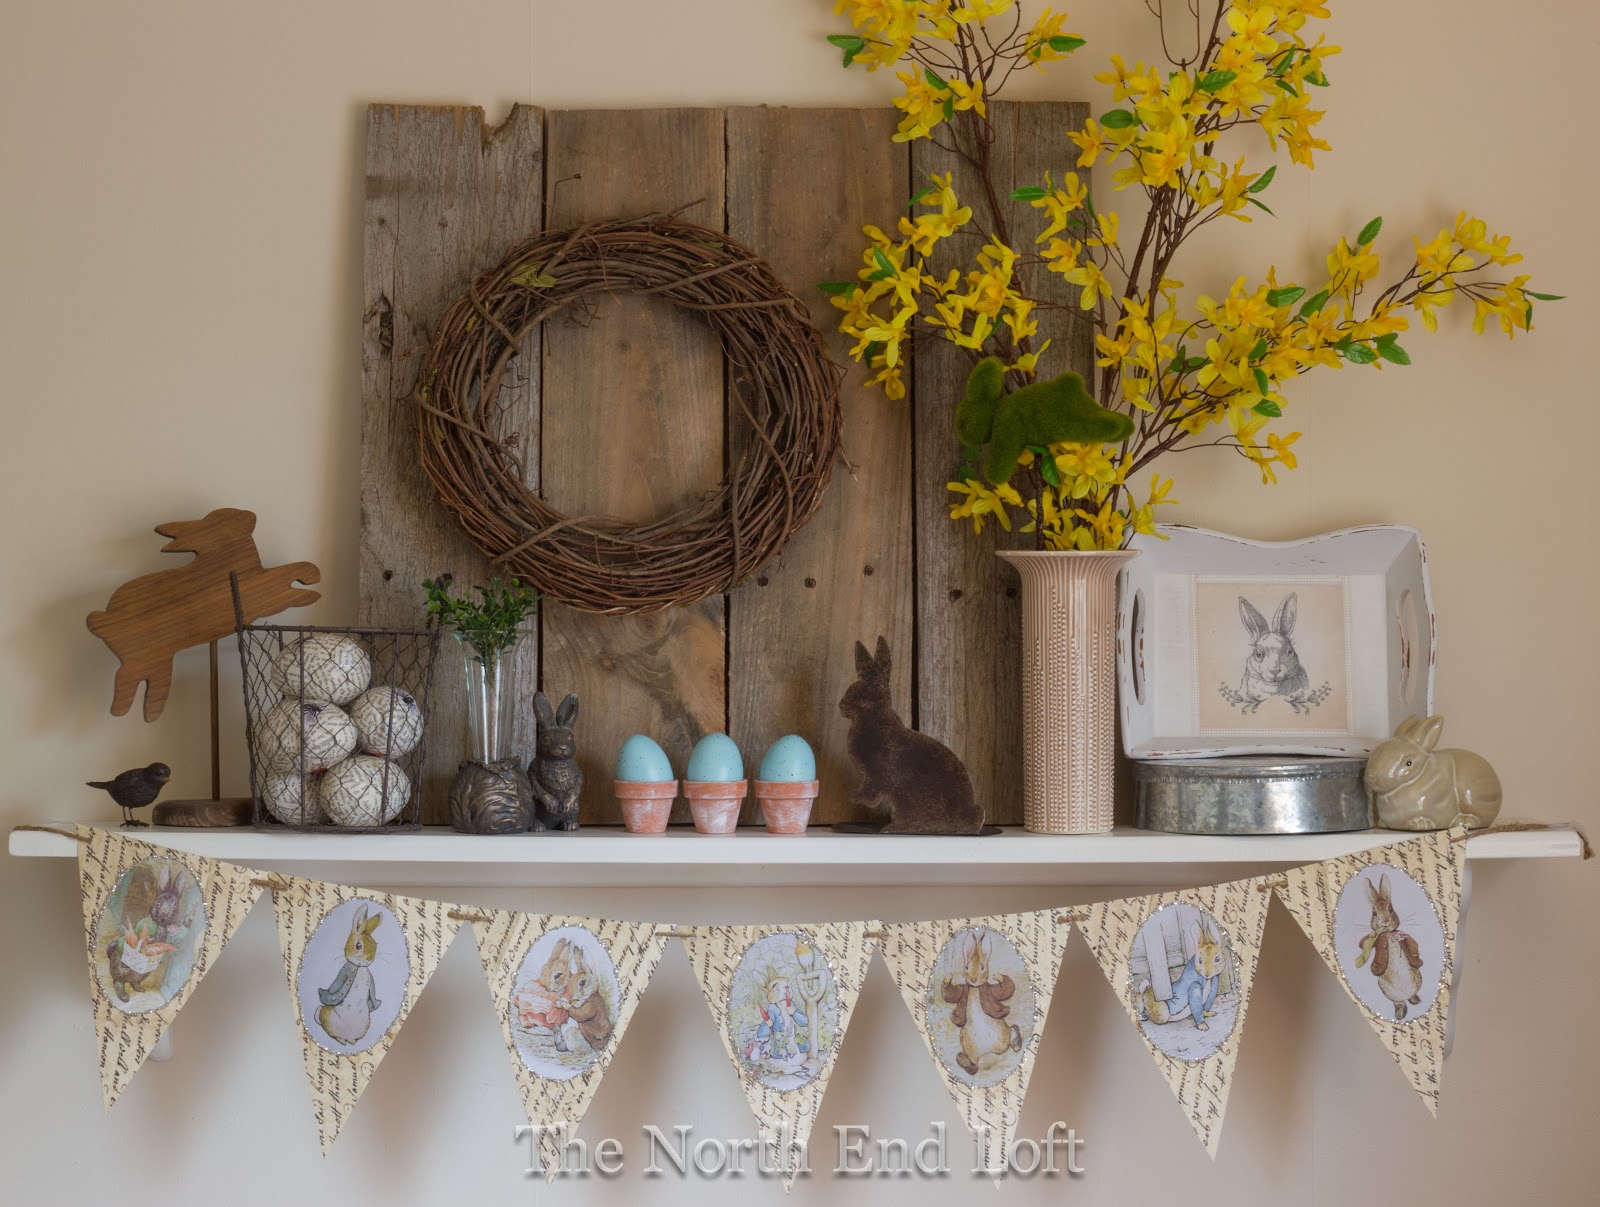 The north end loft rustic easter fantel for House table decorations